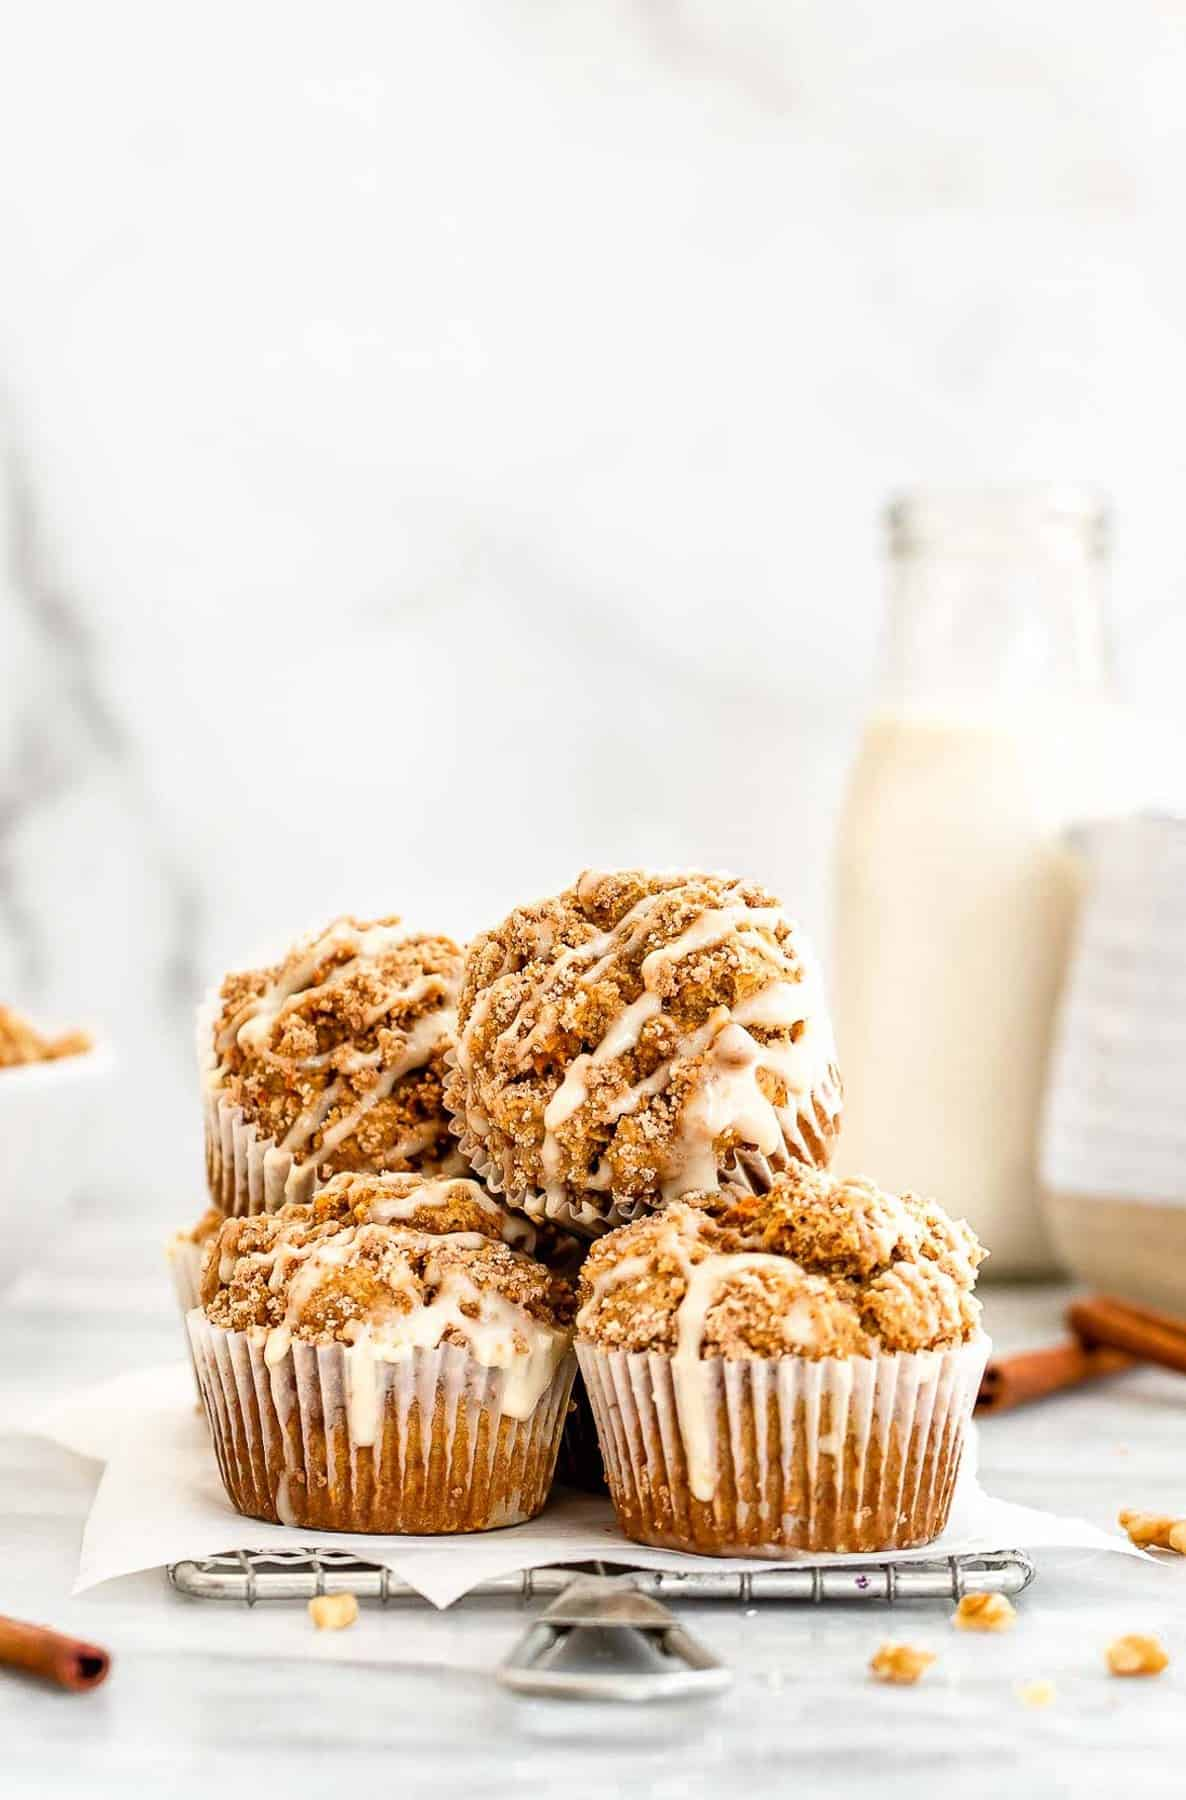 carrot cake muffins stacked on a wire rack